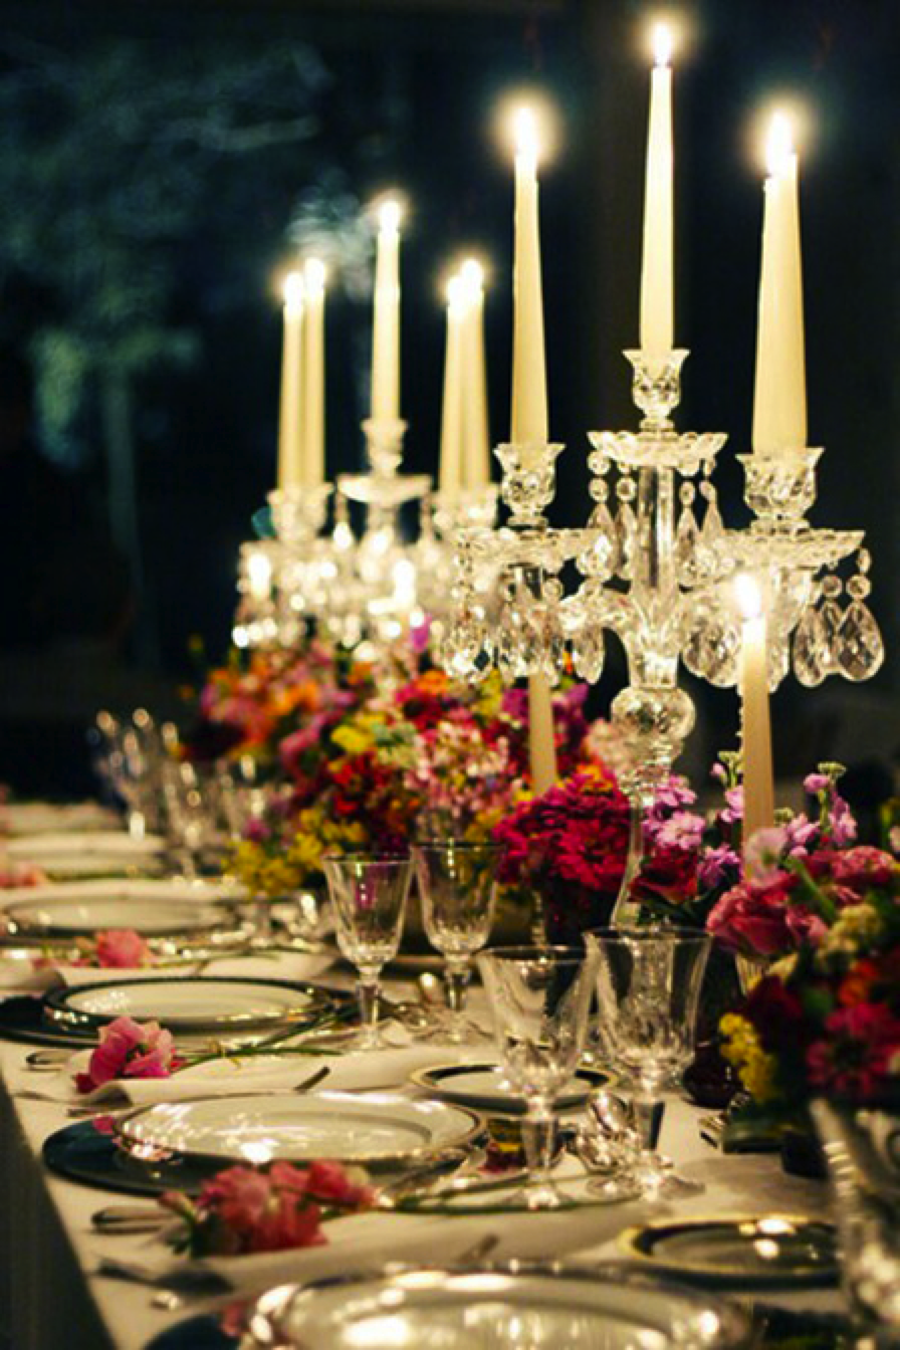 These jewel tone blooms look wonderful mixed with the simple table setting and candelabras { Via }